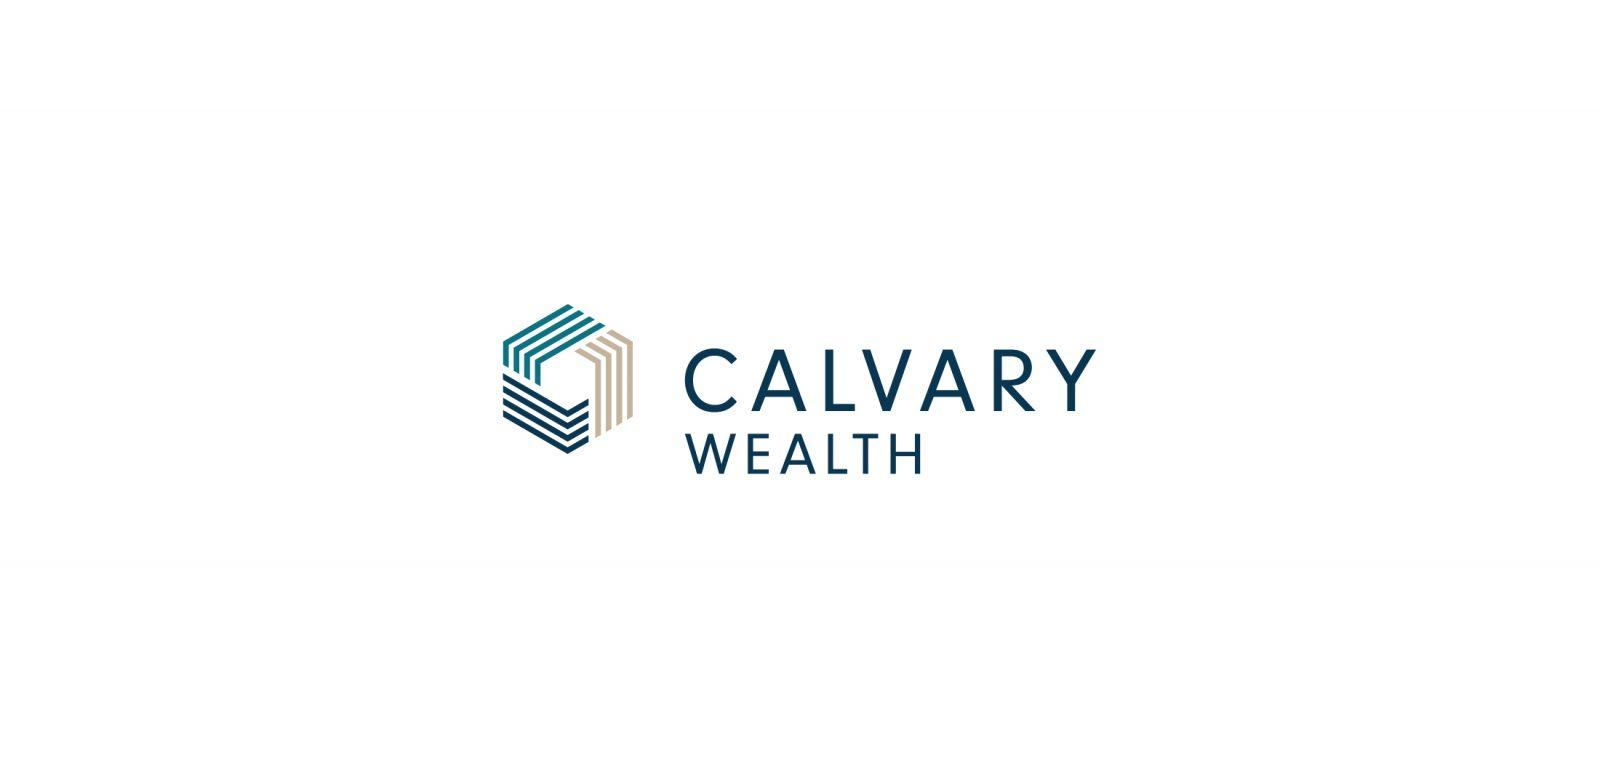 Calvary Wealth Final Logo